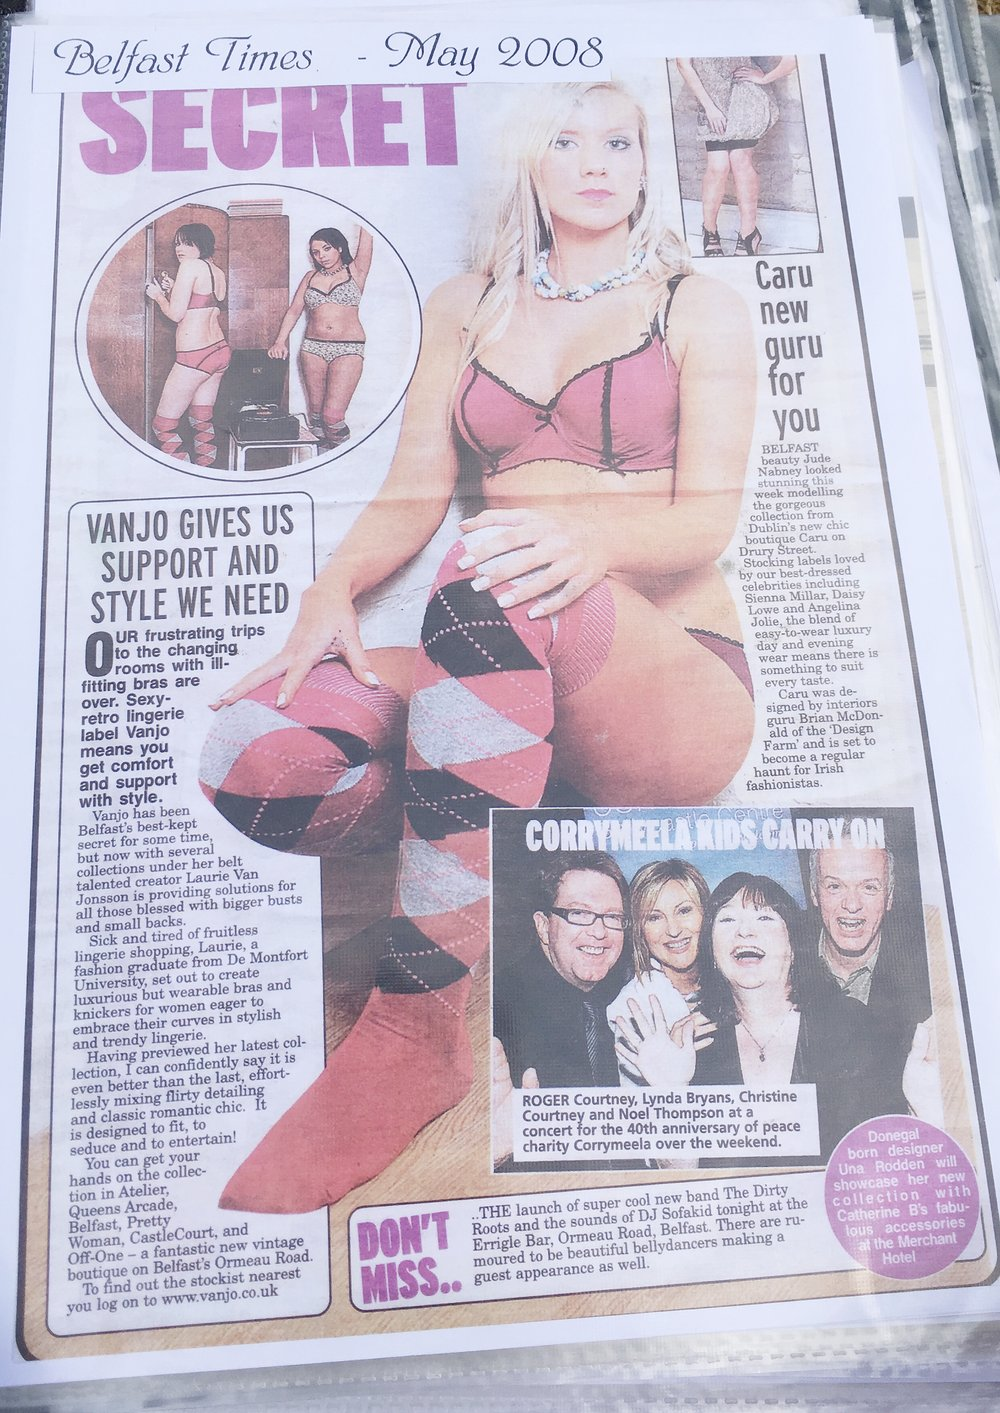 Lingerie designs for Belfast Times